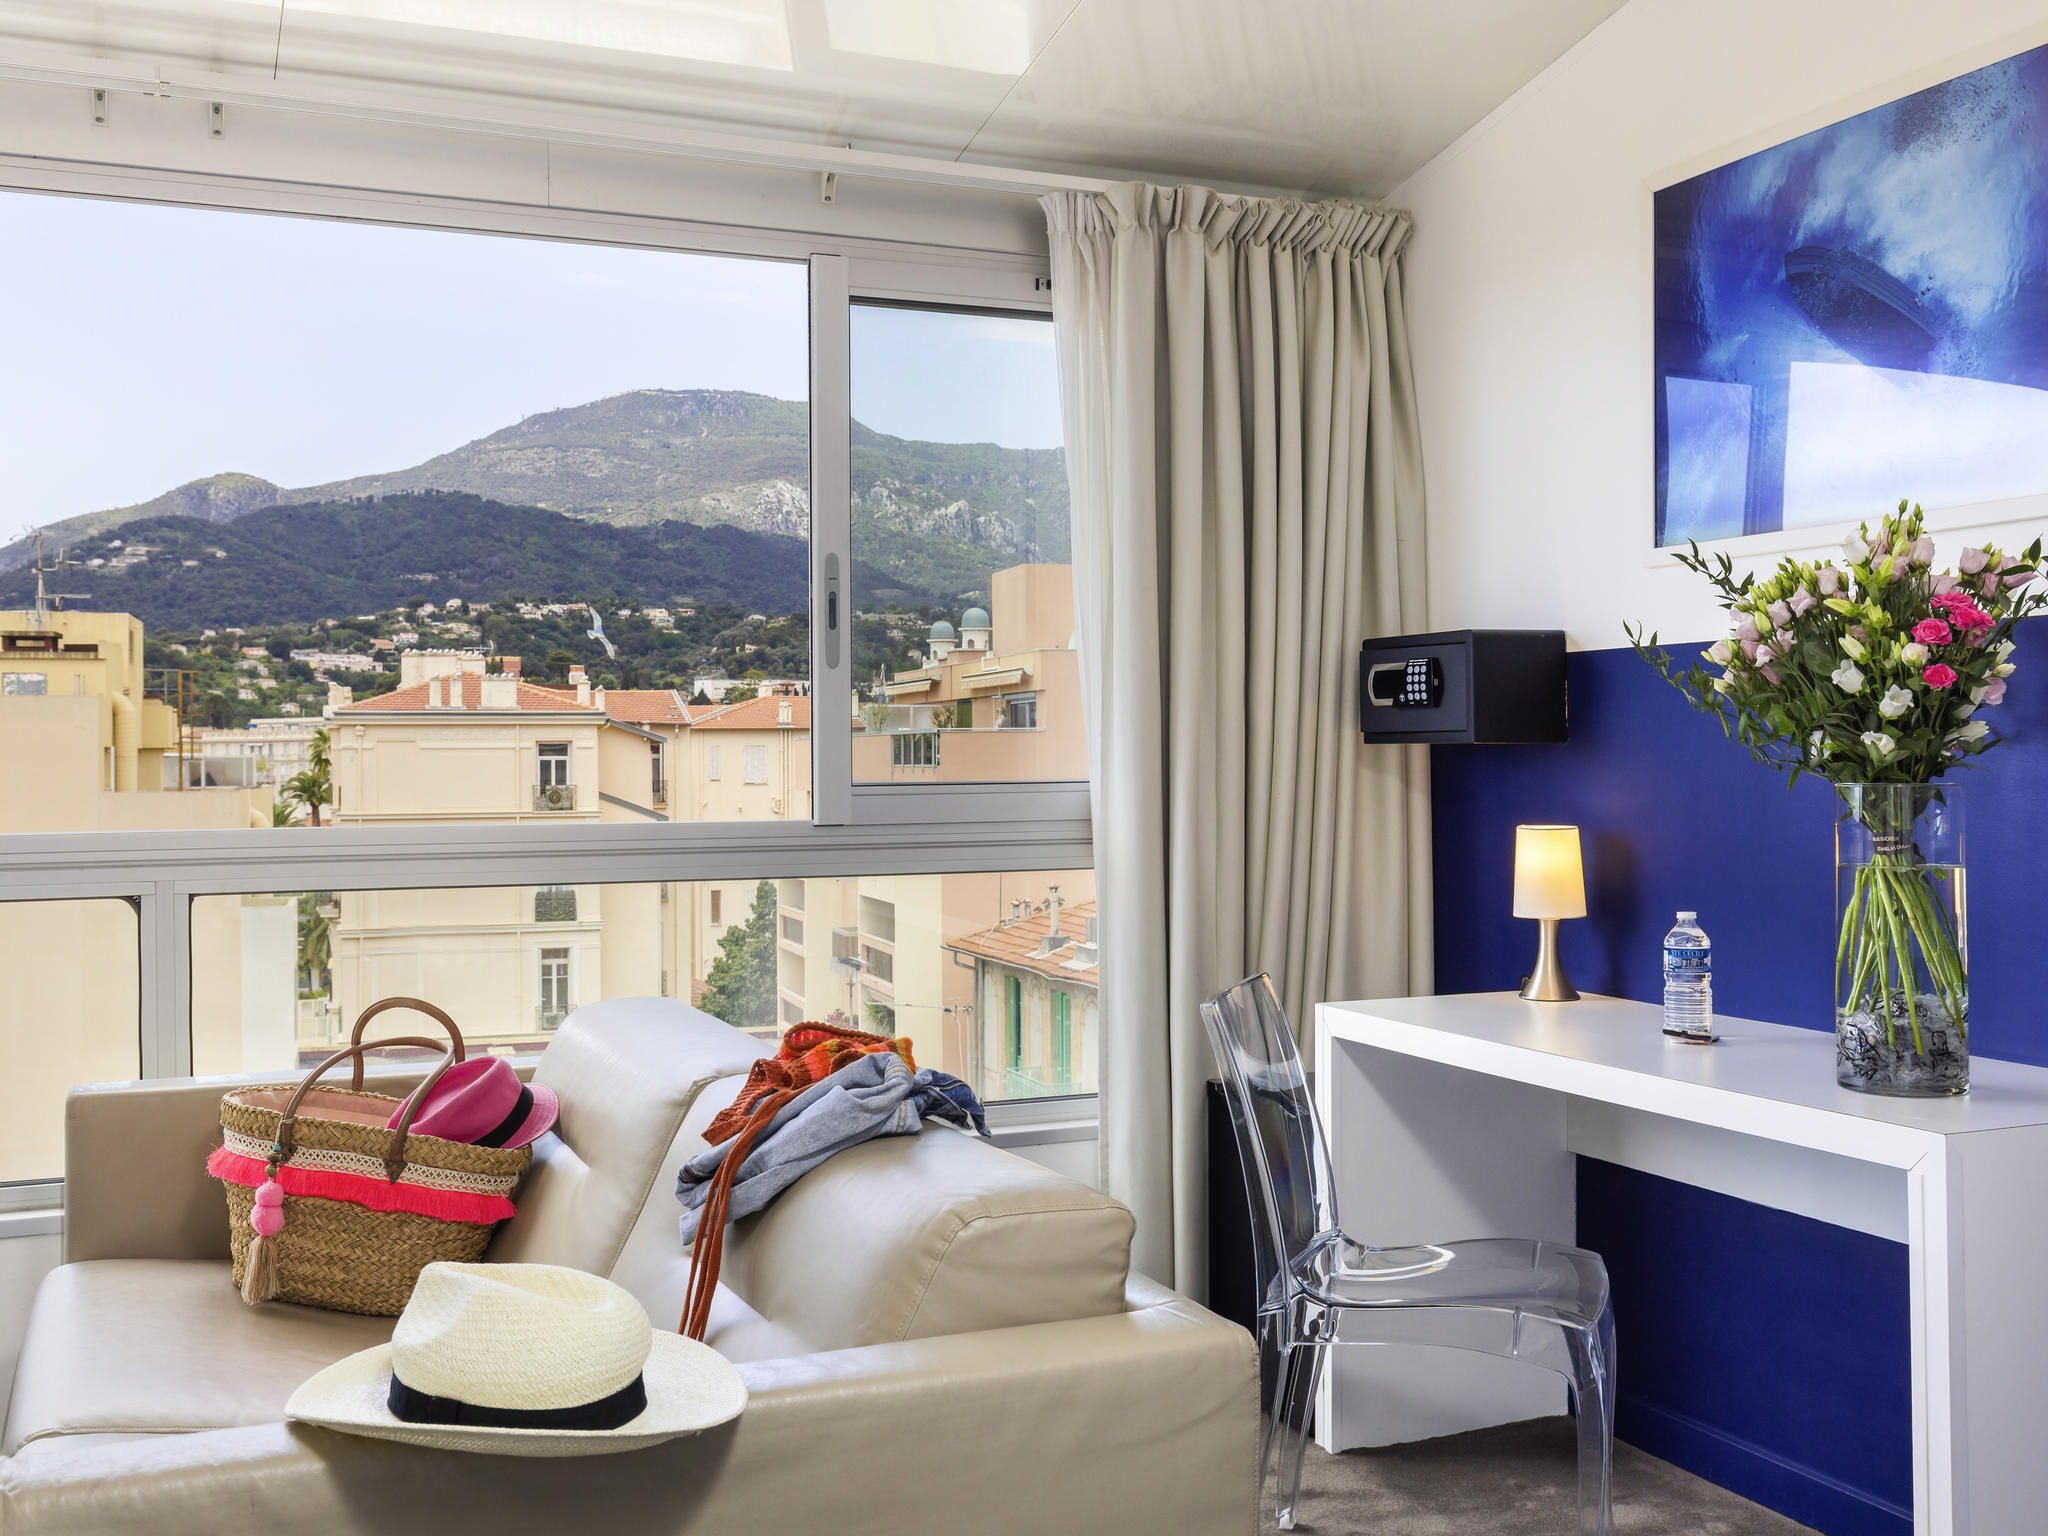 Destination Ibis Styles Menton Centre